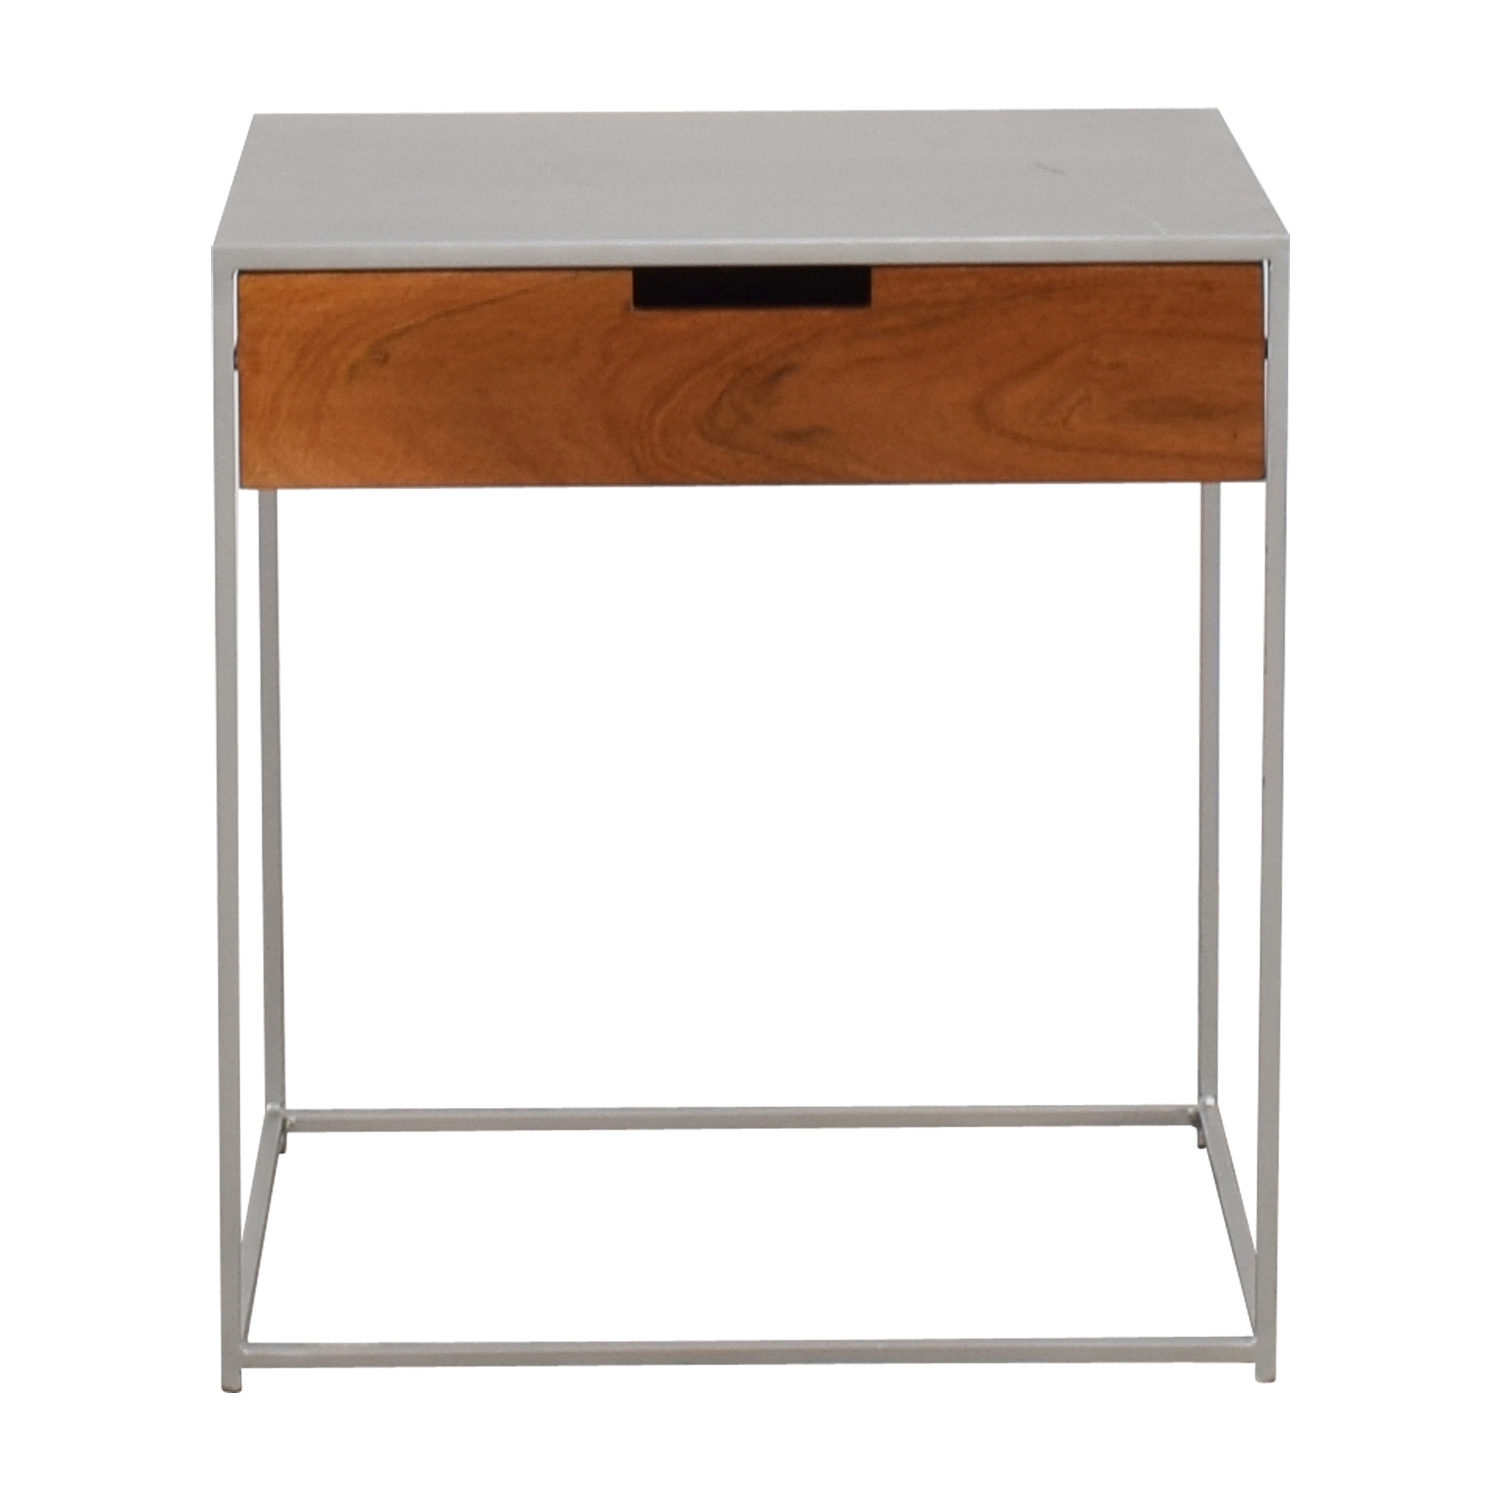 CB2 CB2 Audrey Metal and Wood Night Stand nj